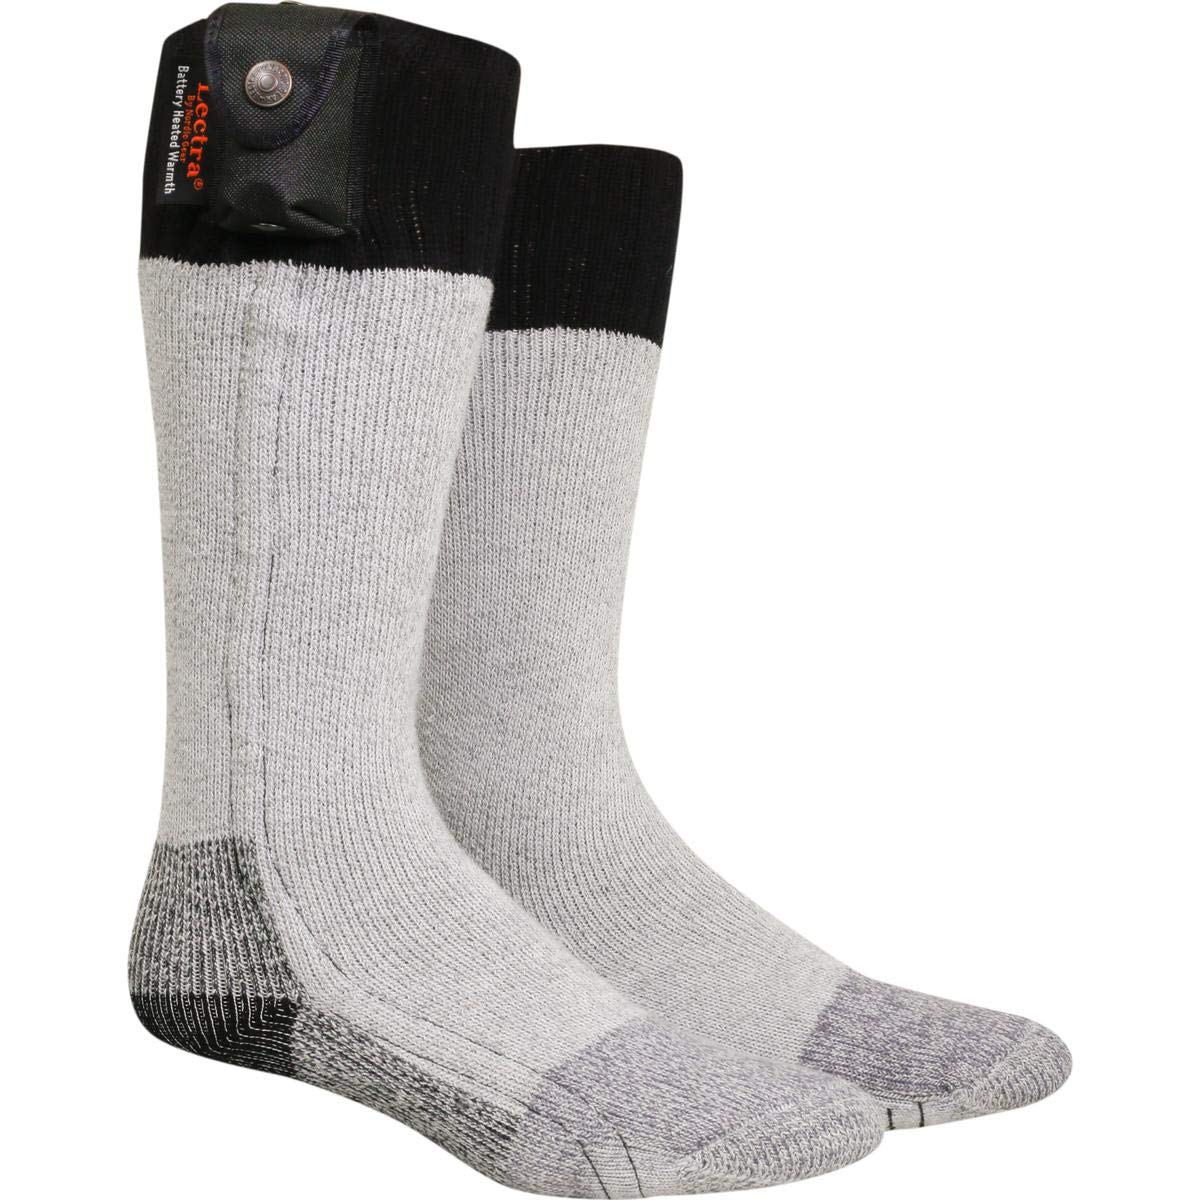 Nordic Gear Unisex Lectra Sox-Electric Battery Heated Socks - X-Small/Small - Black by Turtle Fur